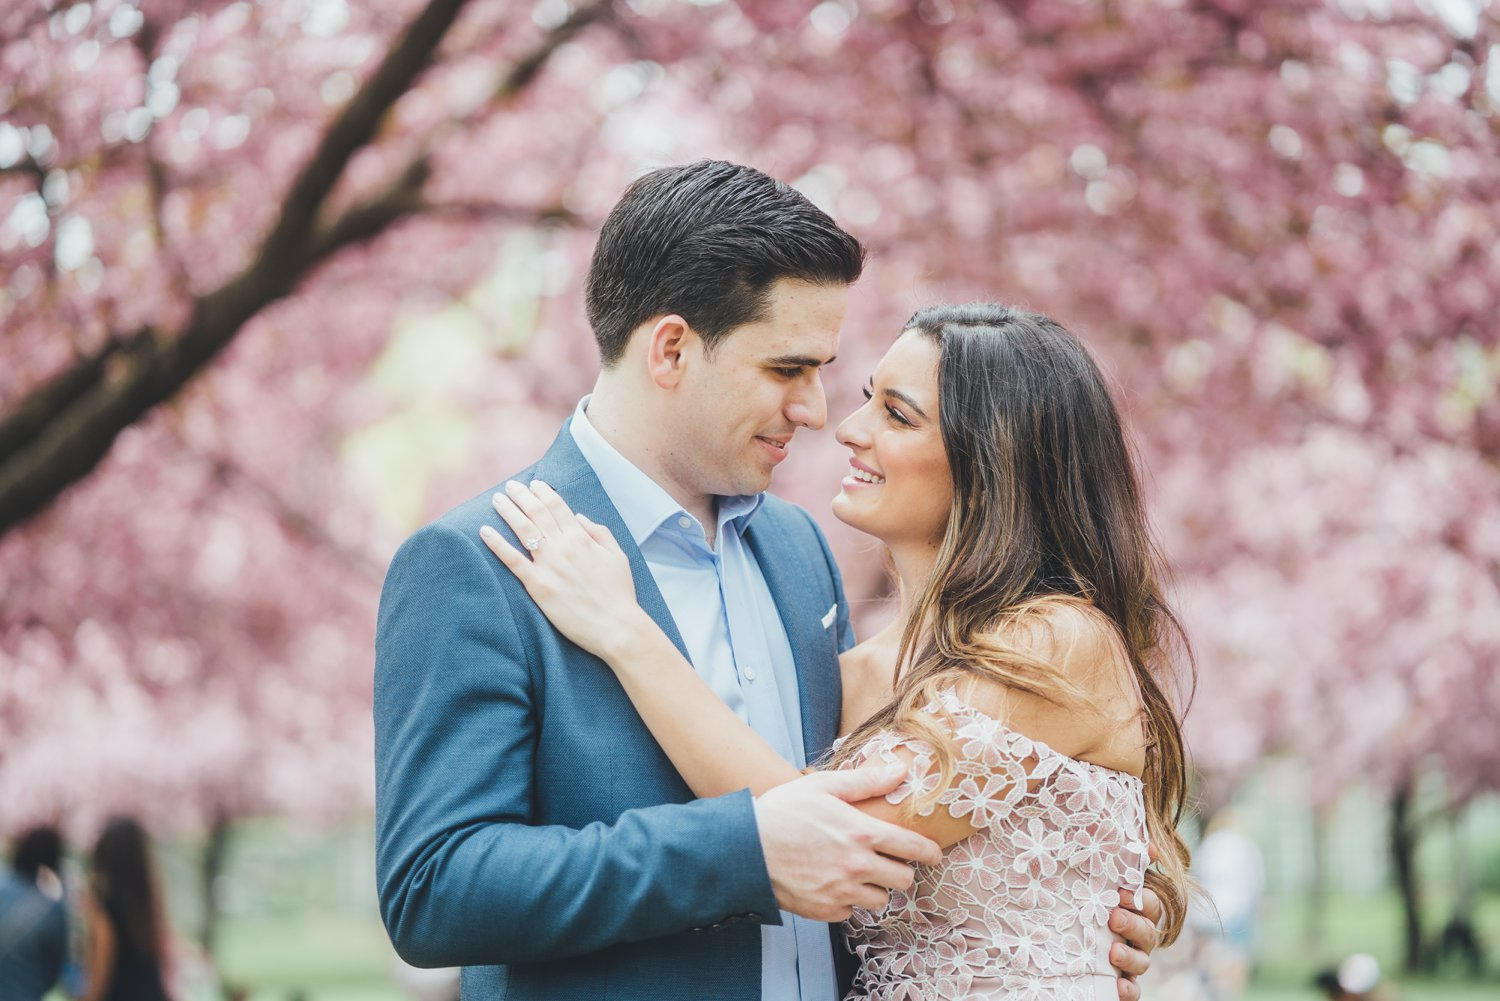 70NYC-NJ-ENGAGEMENT-PHOTOGRAPHY-BY-INTOTHESTORY-MOO-JAE.JPG